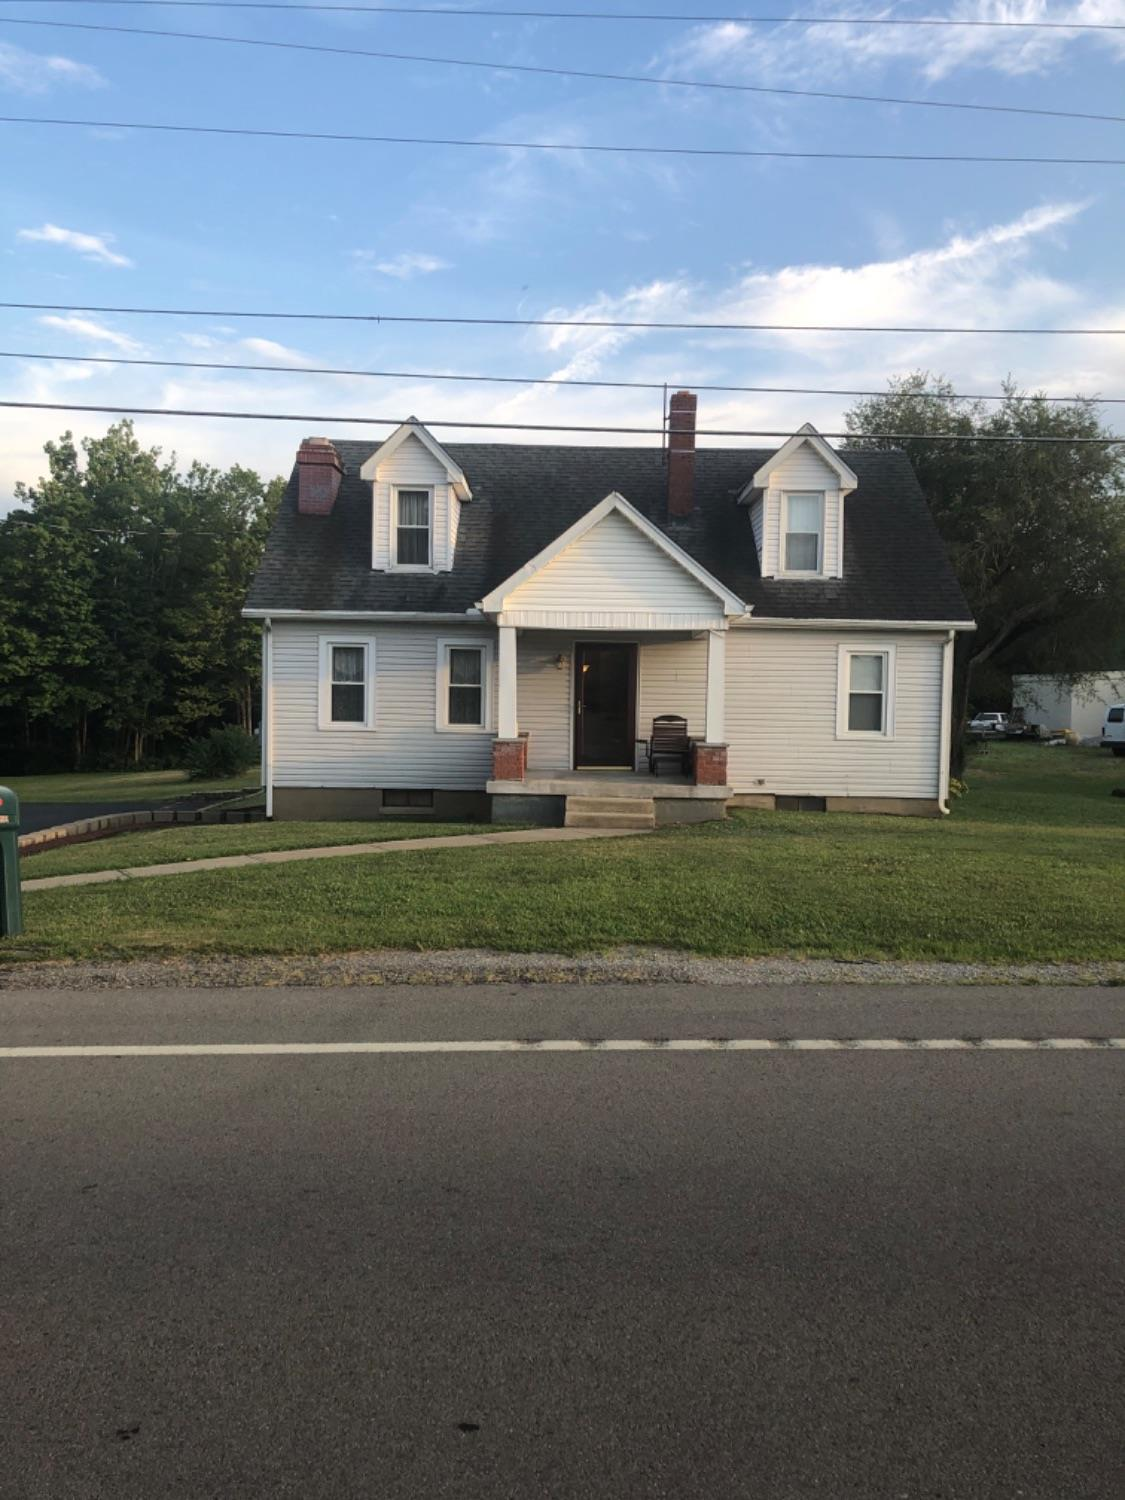 Property for sale at 5323 E Us Rt 22 & 3, Salem Twp,  Ohio 45152